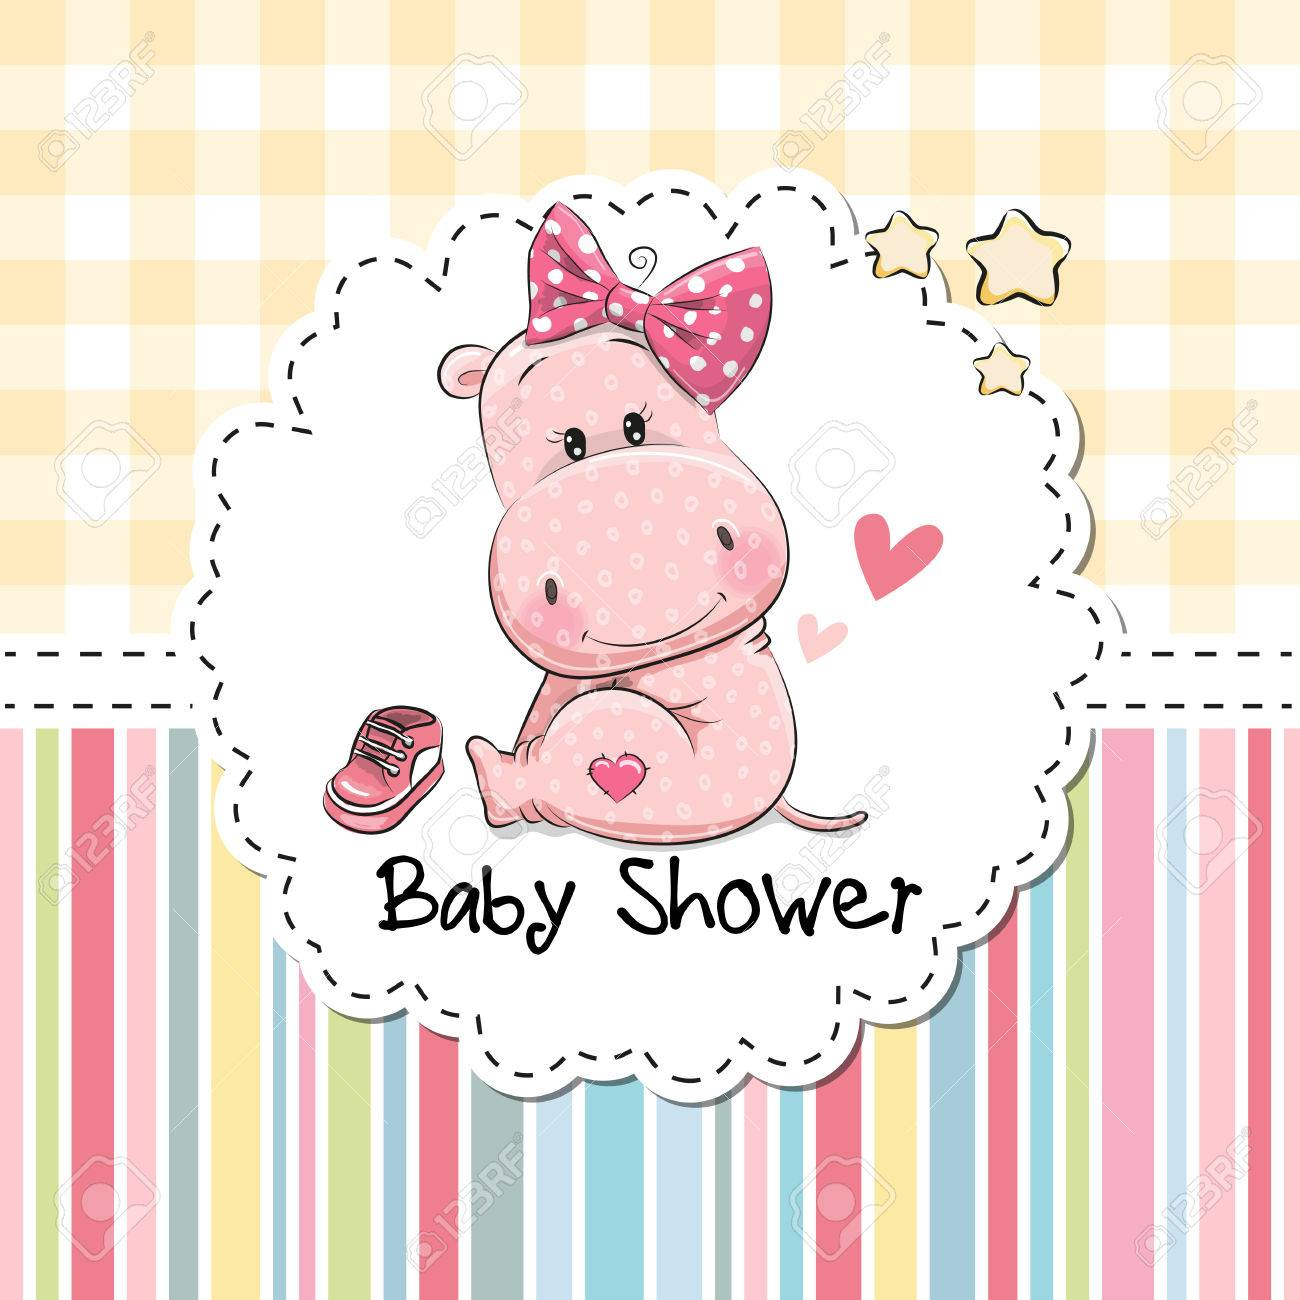 Baby shower greeting card with cute cartoon hippo girl royalty free baby shower greeting card with cute cartoon hippo girl stock vector 72008154 m4hsunfo